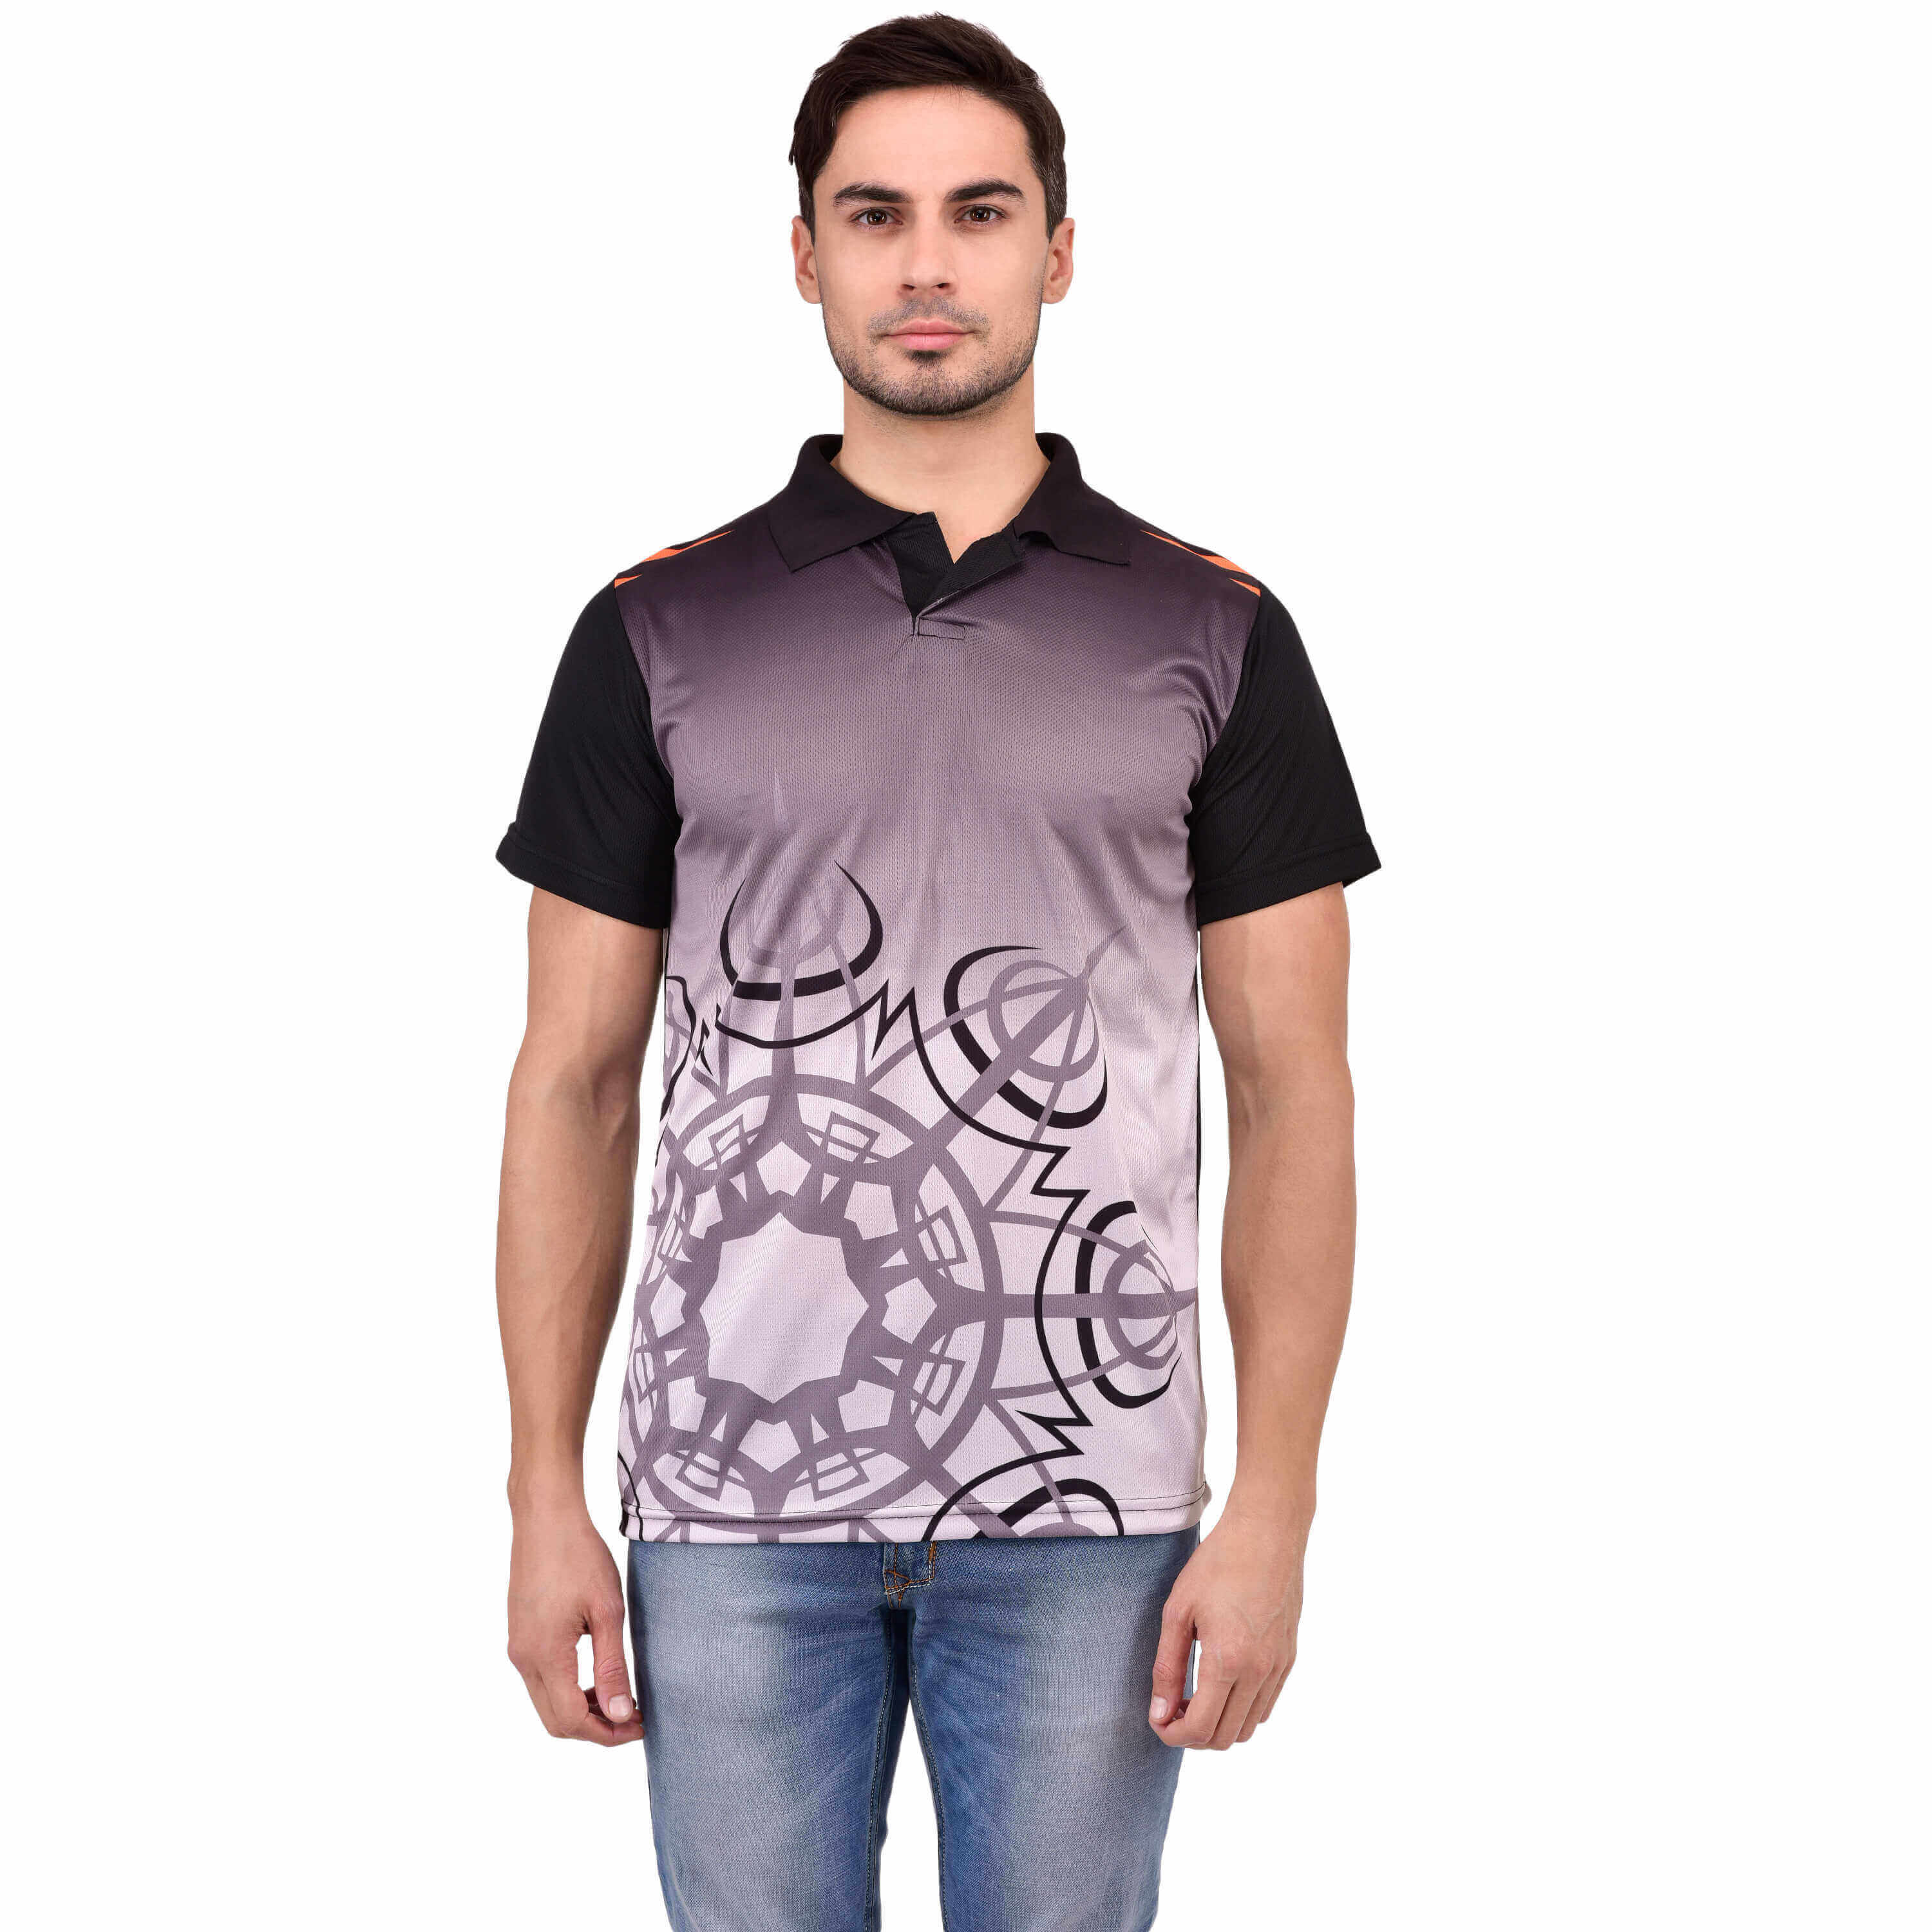 Cheap T Shirts Manufacturers in Thiruvananthapuram